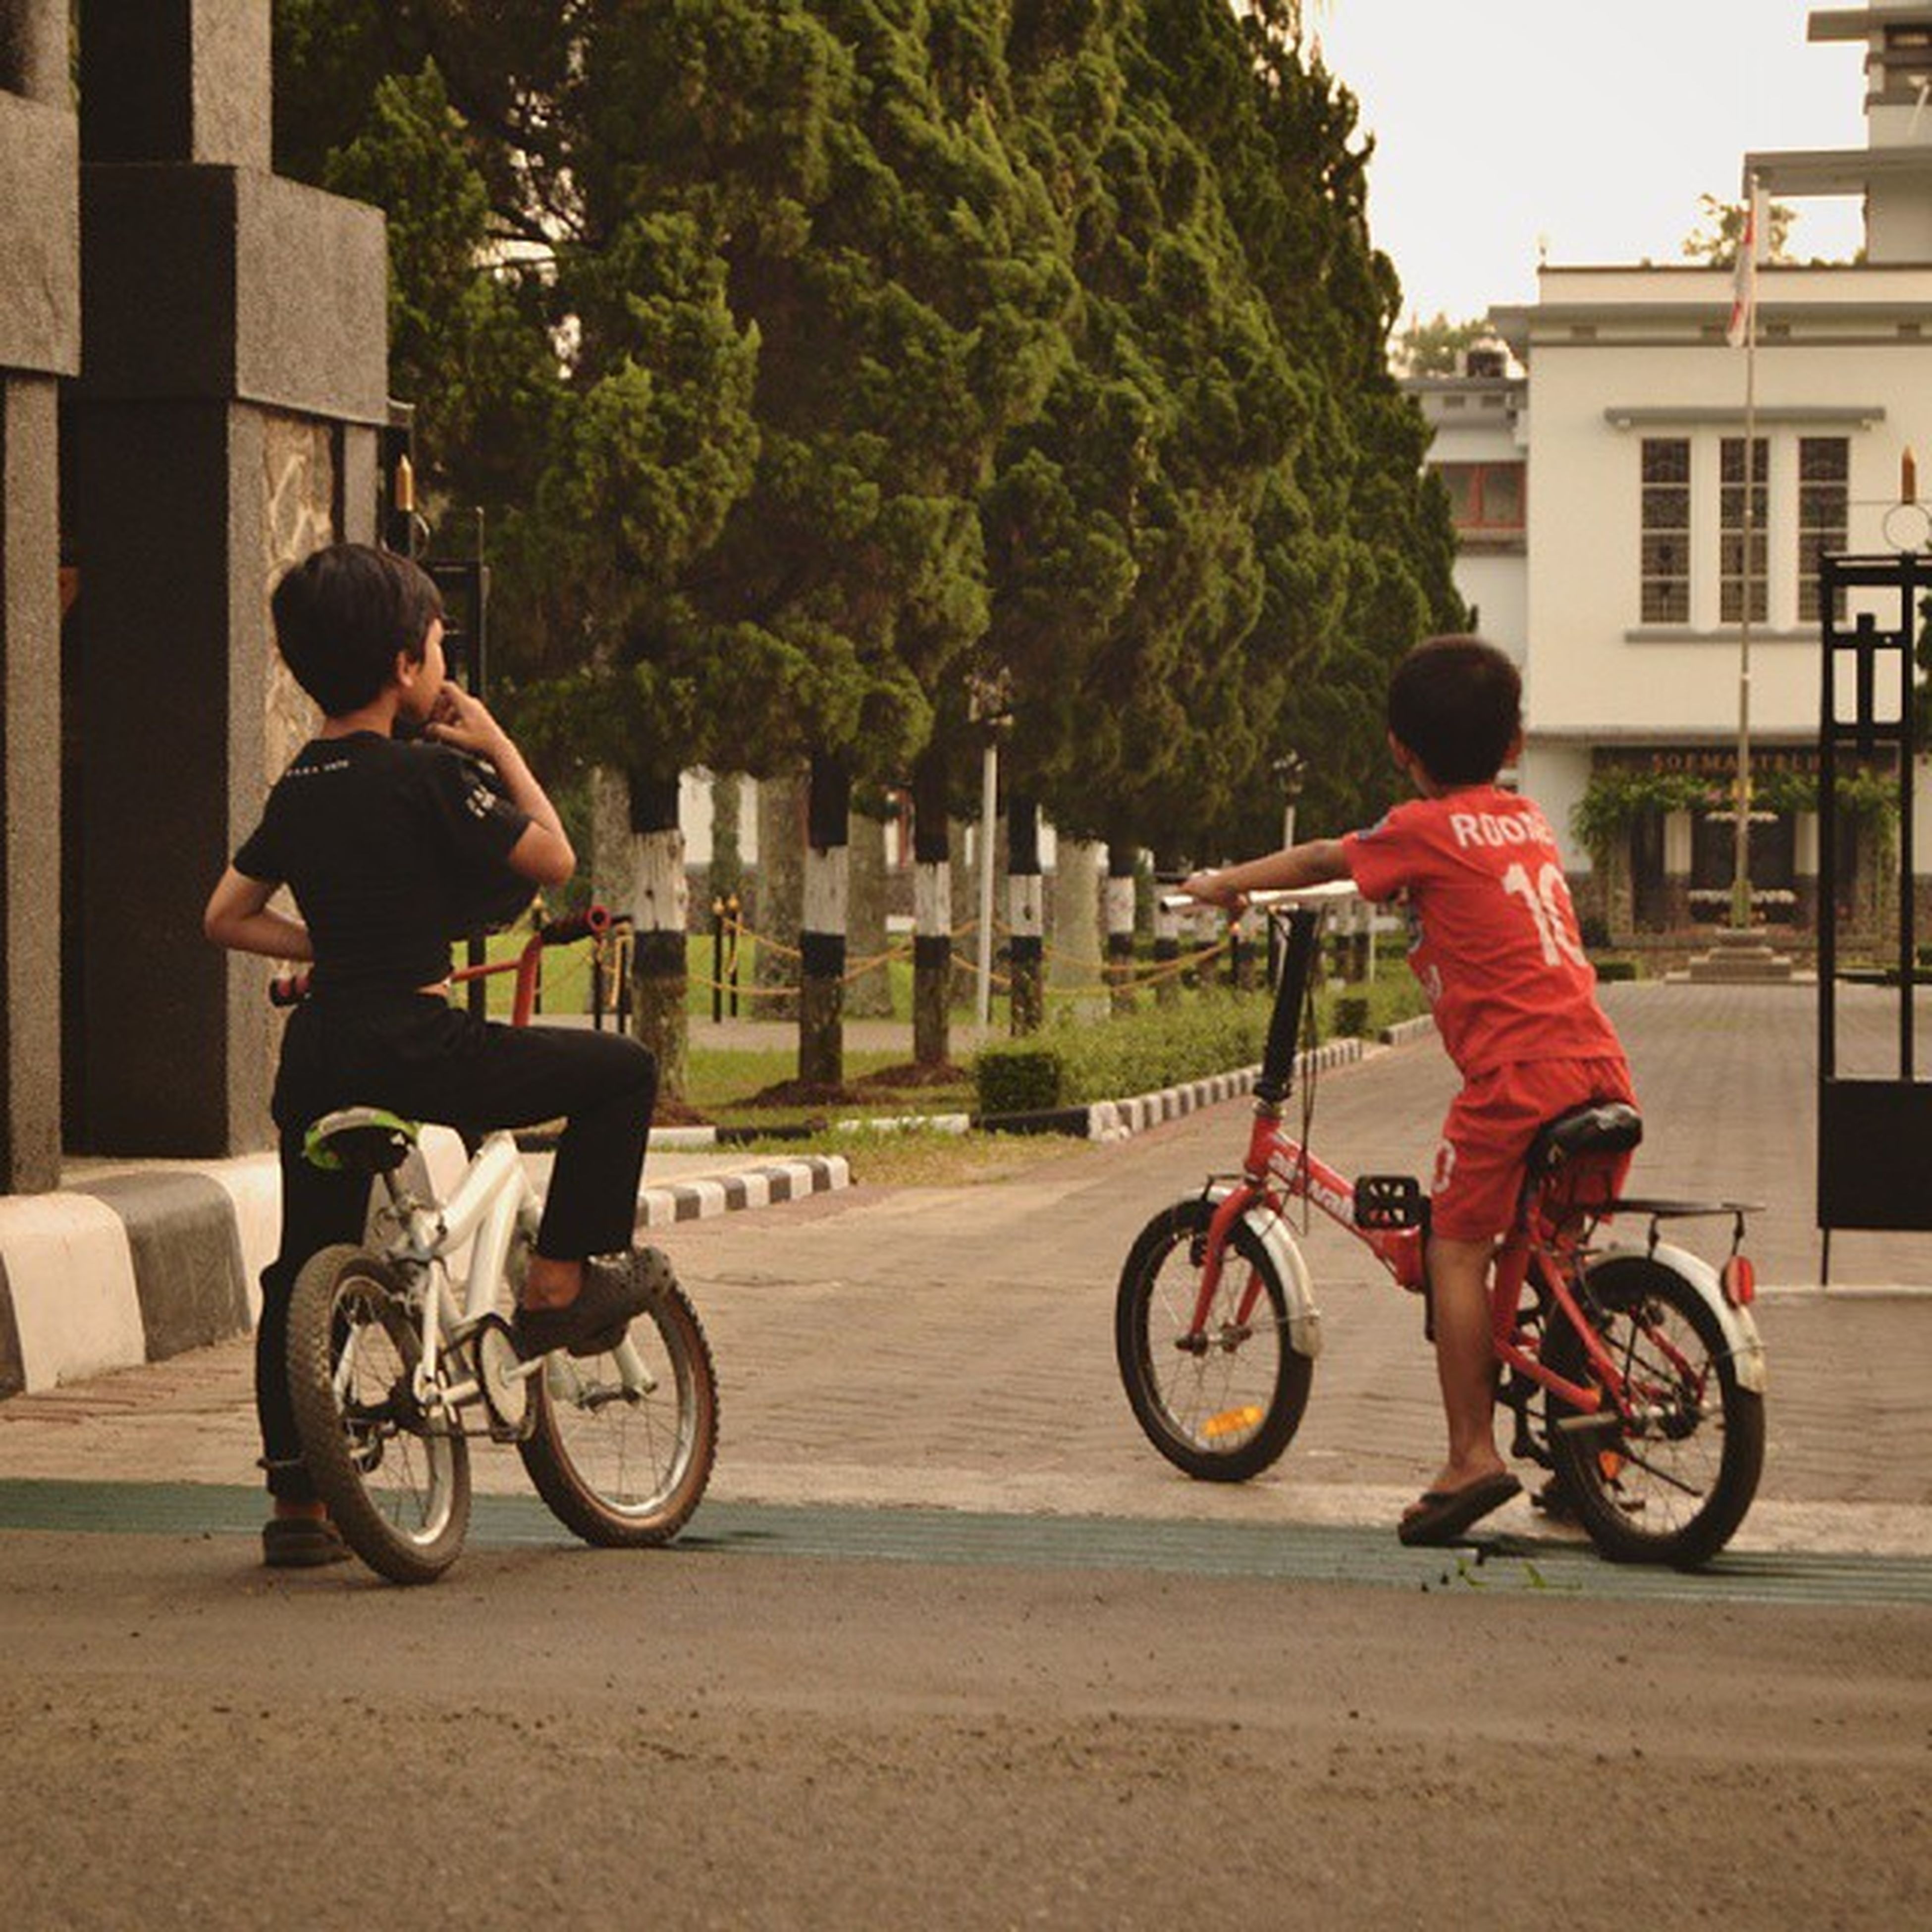 full length, bicycle, lifestyles, casual clothing, leisure activity, land vehicle, boys, transportation, childhood, mode of transport, girls, building exterior, person, riding, elementary age, street, togetherness